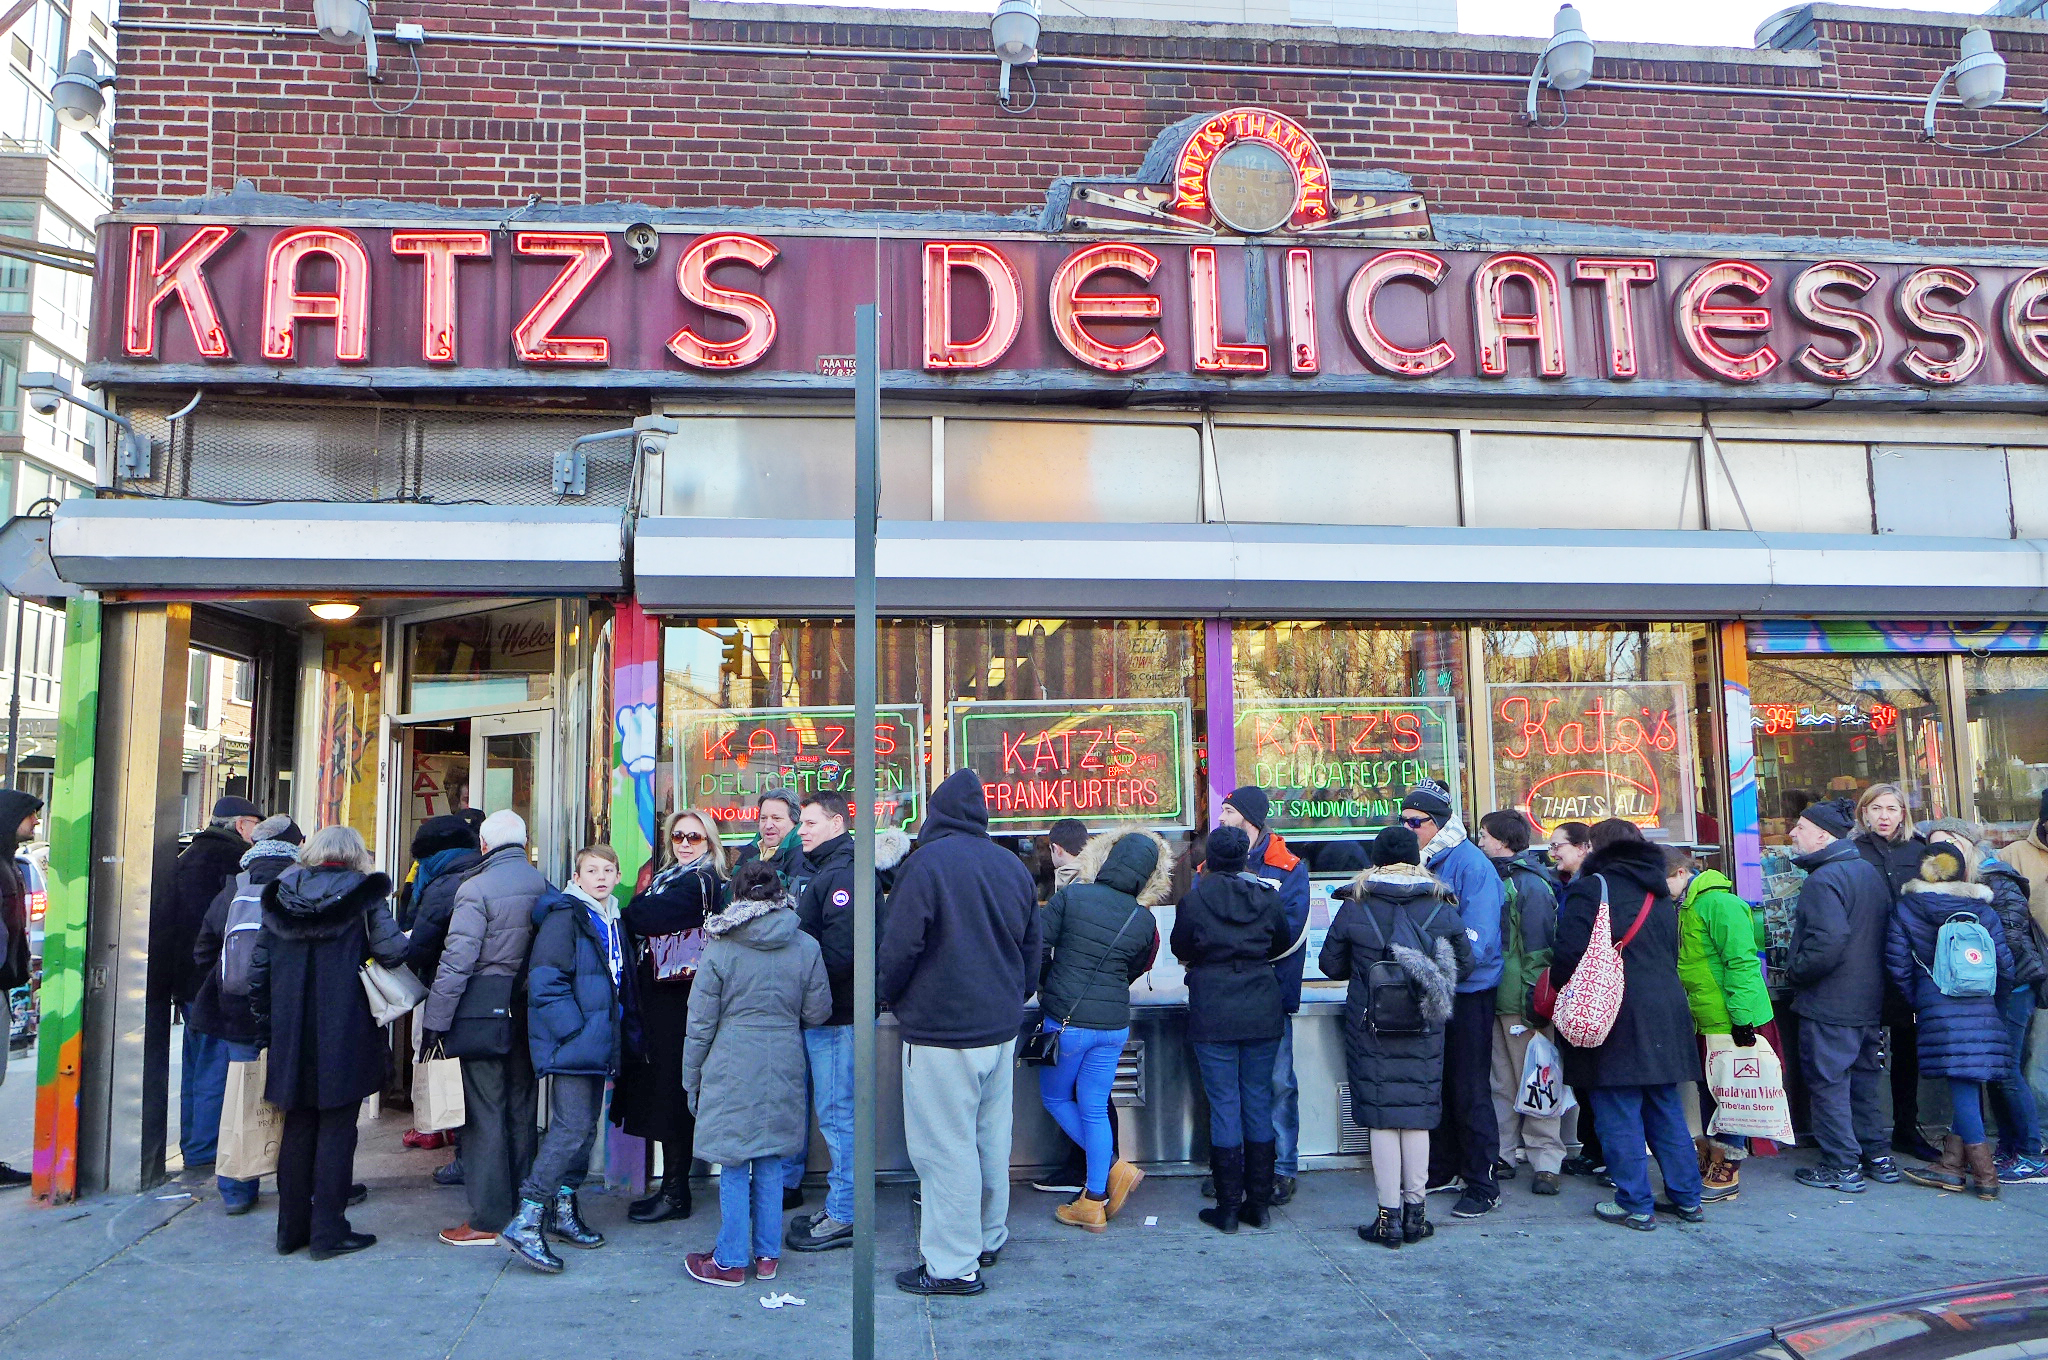 A line of people outside the deli, the front window of which is filled with neon signs